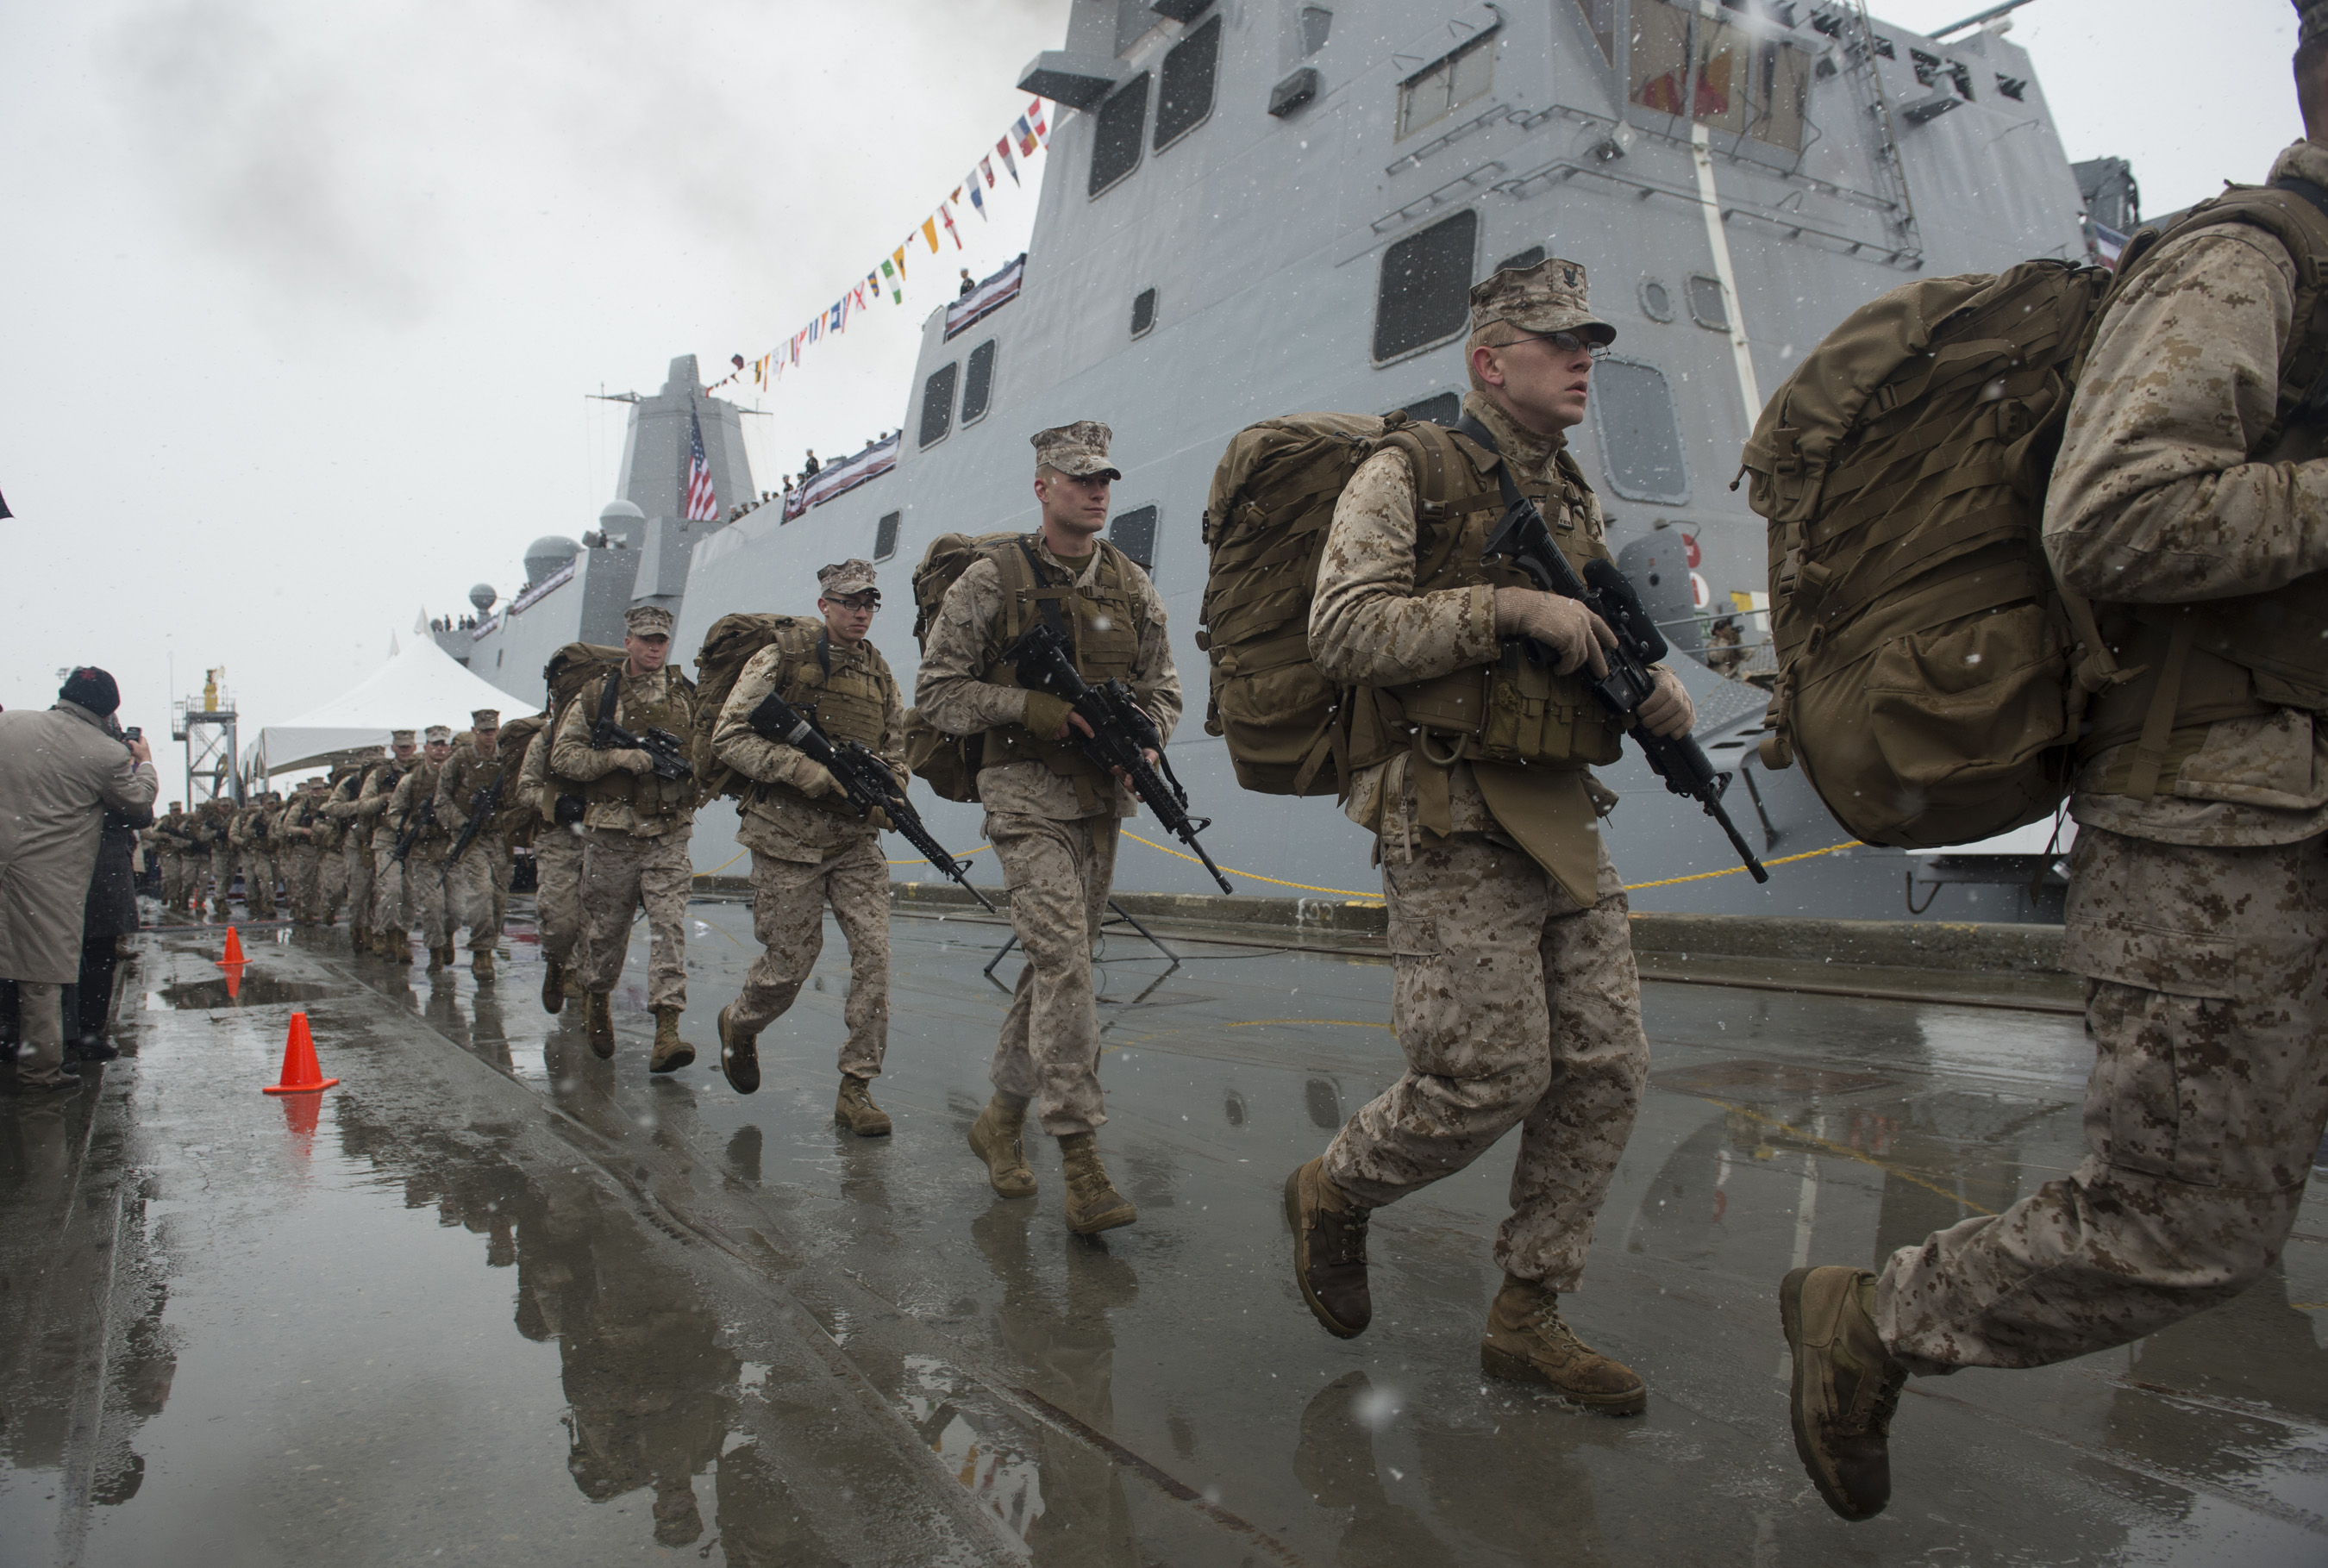 130504-N-DR144-818 ANCHORAGE, Alaska (May 4, 2013) Marines assigned to Task Force Denali run to bring the ship to life during the commissioning of the San Antonio-class amphibious transport dock ship USS Anchorage (LPD 23) at the Port of Anchorage. More than 4,000 people gathered to witness the ship's commissioning in its namesake city of Anchorage, Alaska. Anchorage, the seventh San Antonio-class LPD, is the second ship to be named for the city and the first U.S. Navy ship to be commissioned in Alaska. (U.S. Navy photo by Mass Communication Specialist 1st Class James R. Evans/Released)